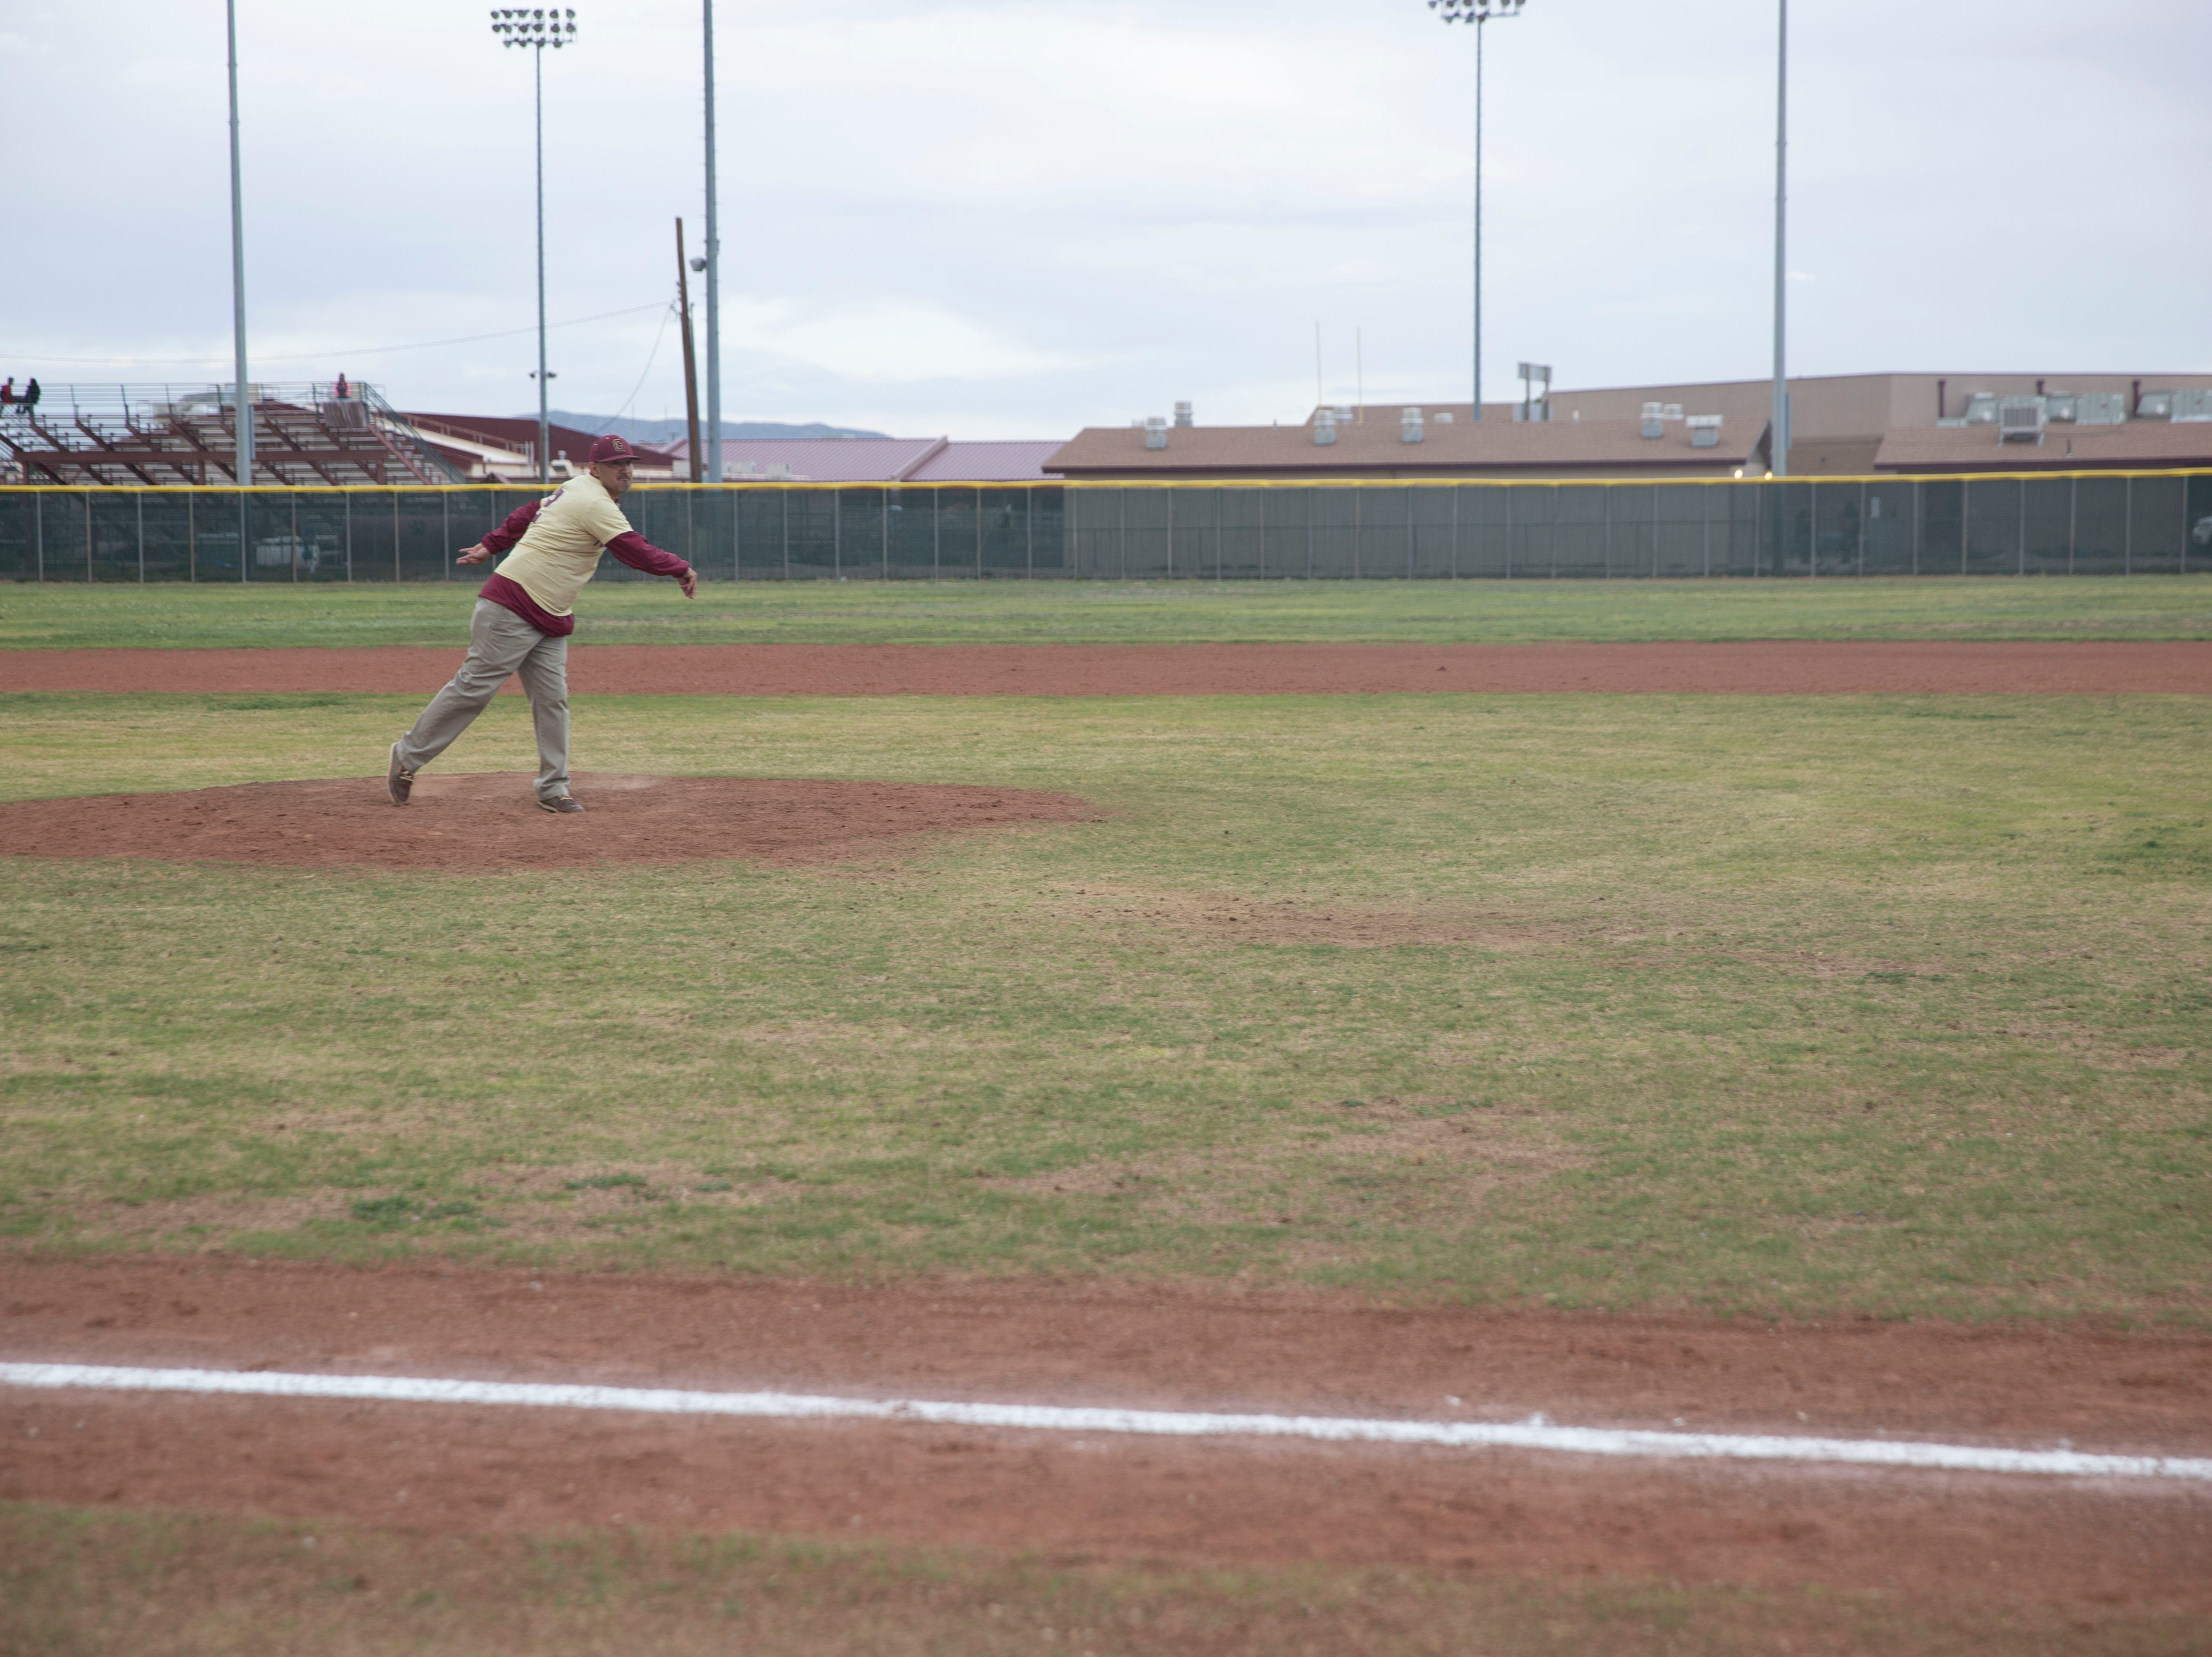 Beto Romero Sr. throws the first pitch at a baseball game Friday, April 5, in honor of his son Beto Romero Jr., 16, who was killed this week in a hit-and-run accident.